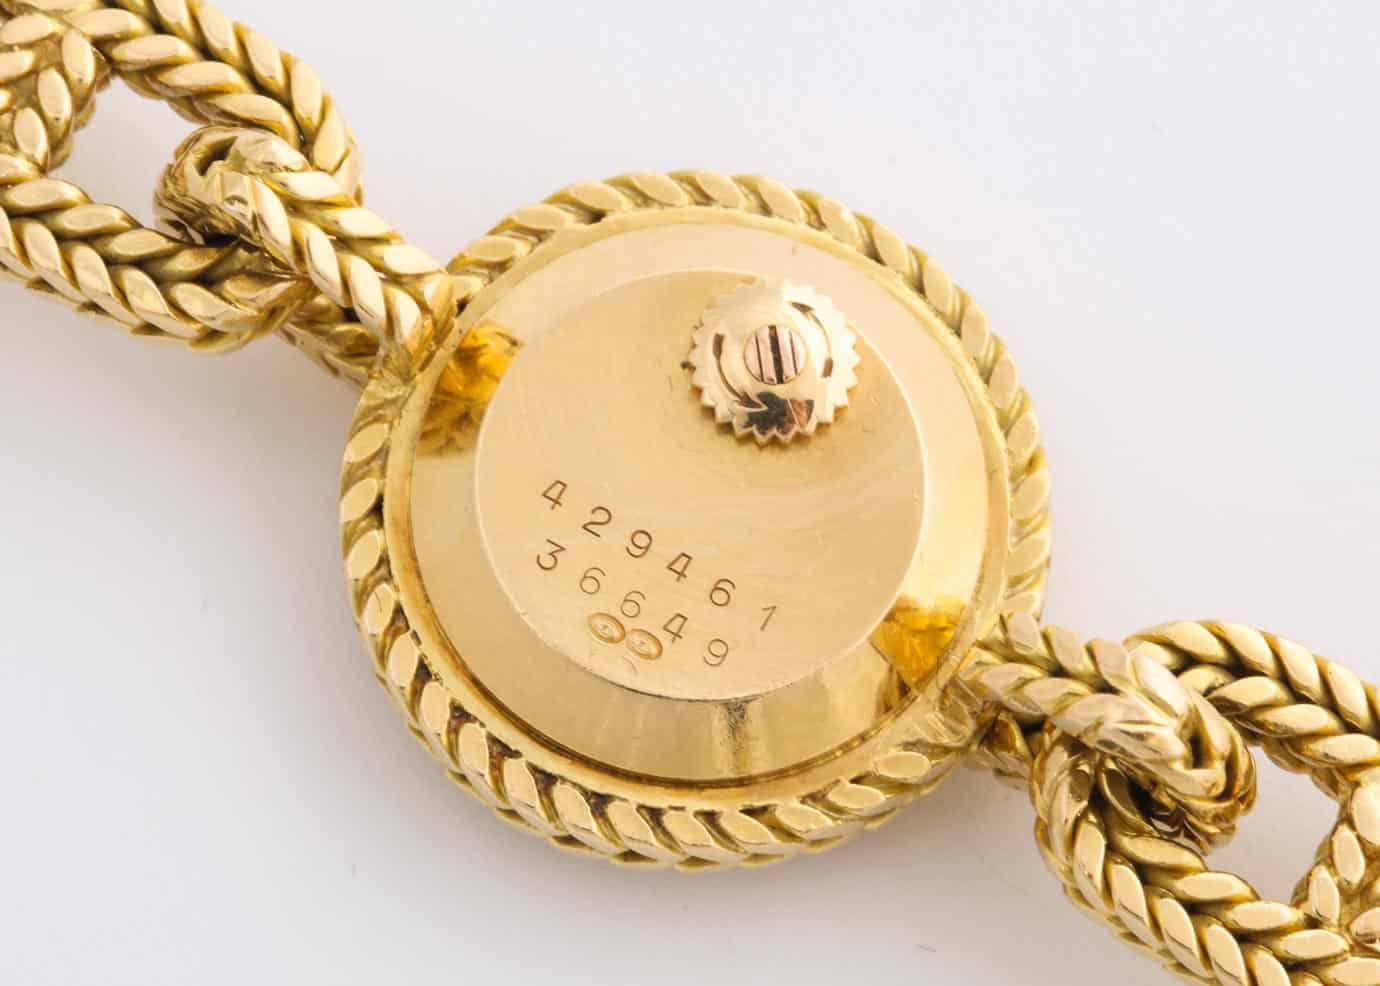 vintage hermes tresse chaine d'ancre watch